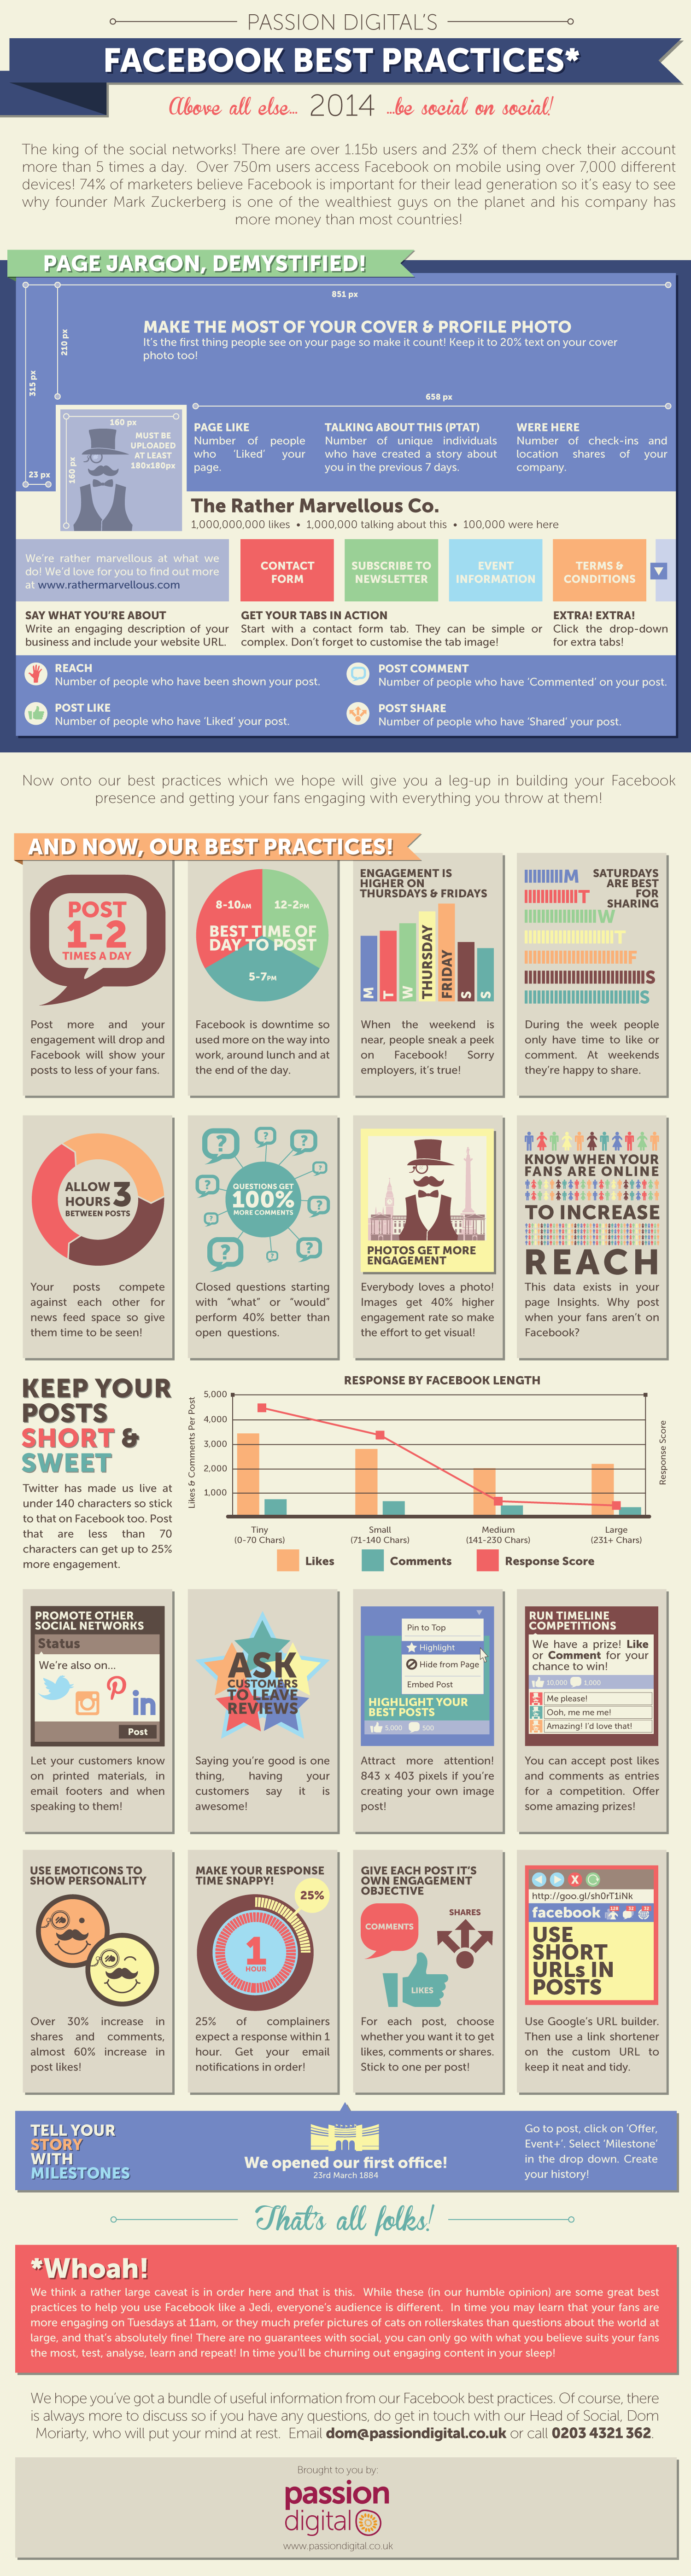 23 Facebook Optimization Tips for 2014 [INFOGRAPHIC]